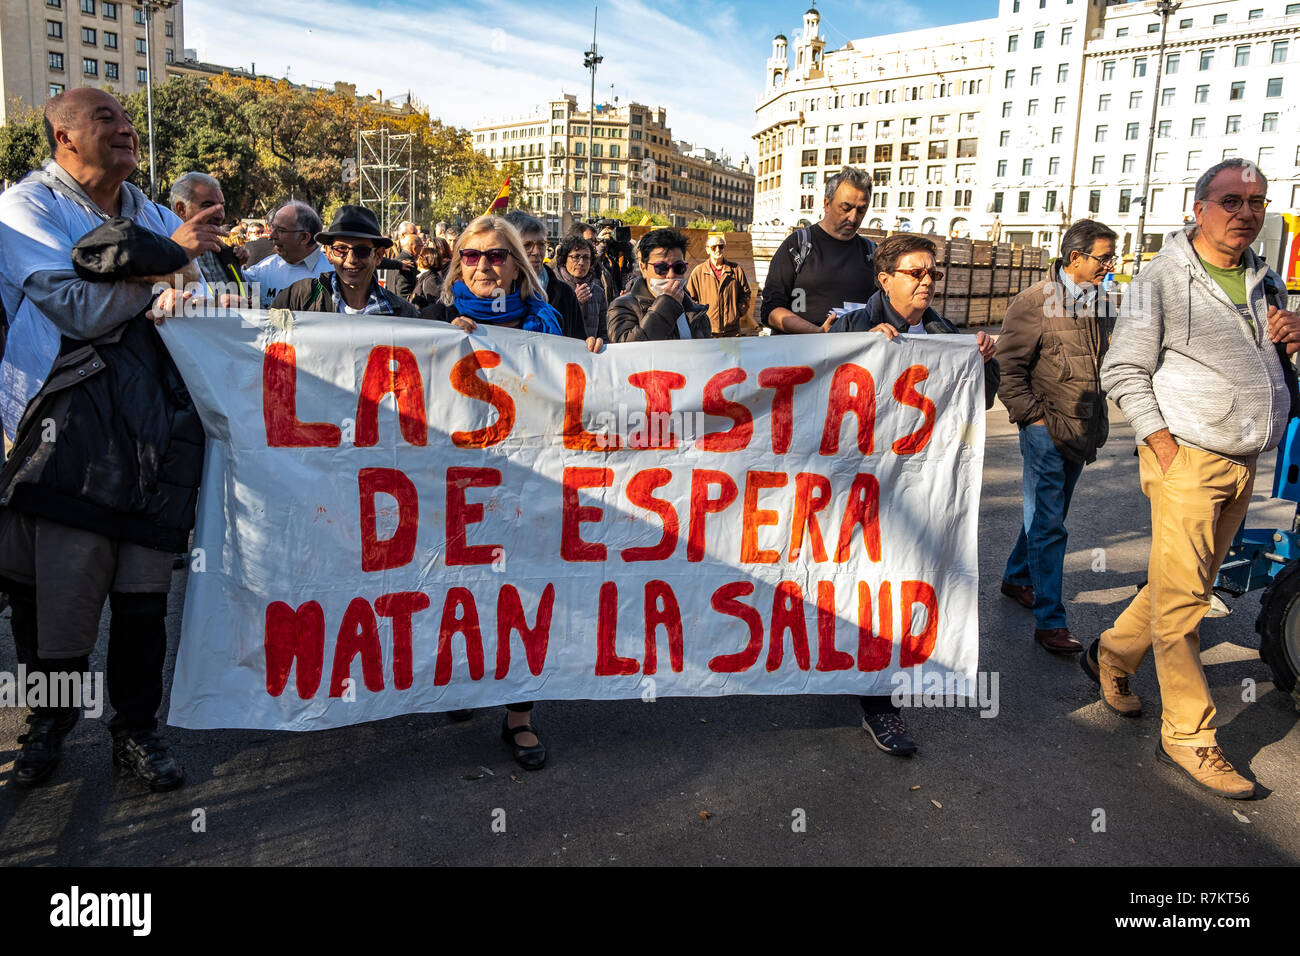 Barcelona, Spain. 10th December 2018. Protesters are seen holding a banner against waiting lists of public health during the protest. Called by Marea Blanca Catalunya within the state fight against the waiting lists and the commercialization of health, the protesters have toured the center of Barcelona to finish in front of the Generalitat of Catalonia. Credit: SOPA Images Limited/Alamy Live News - Stock Image